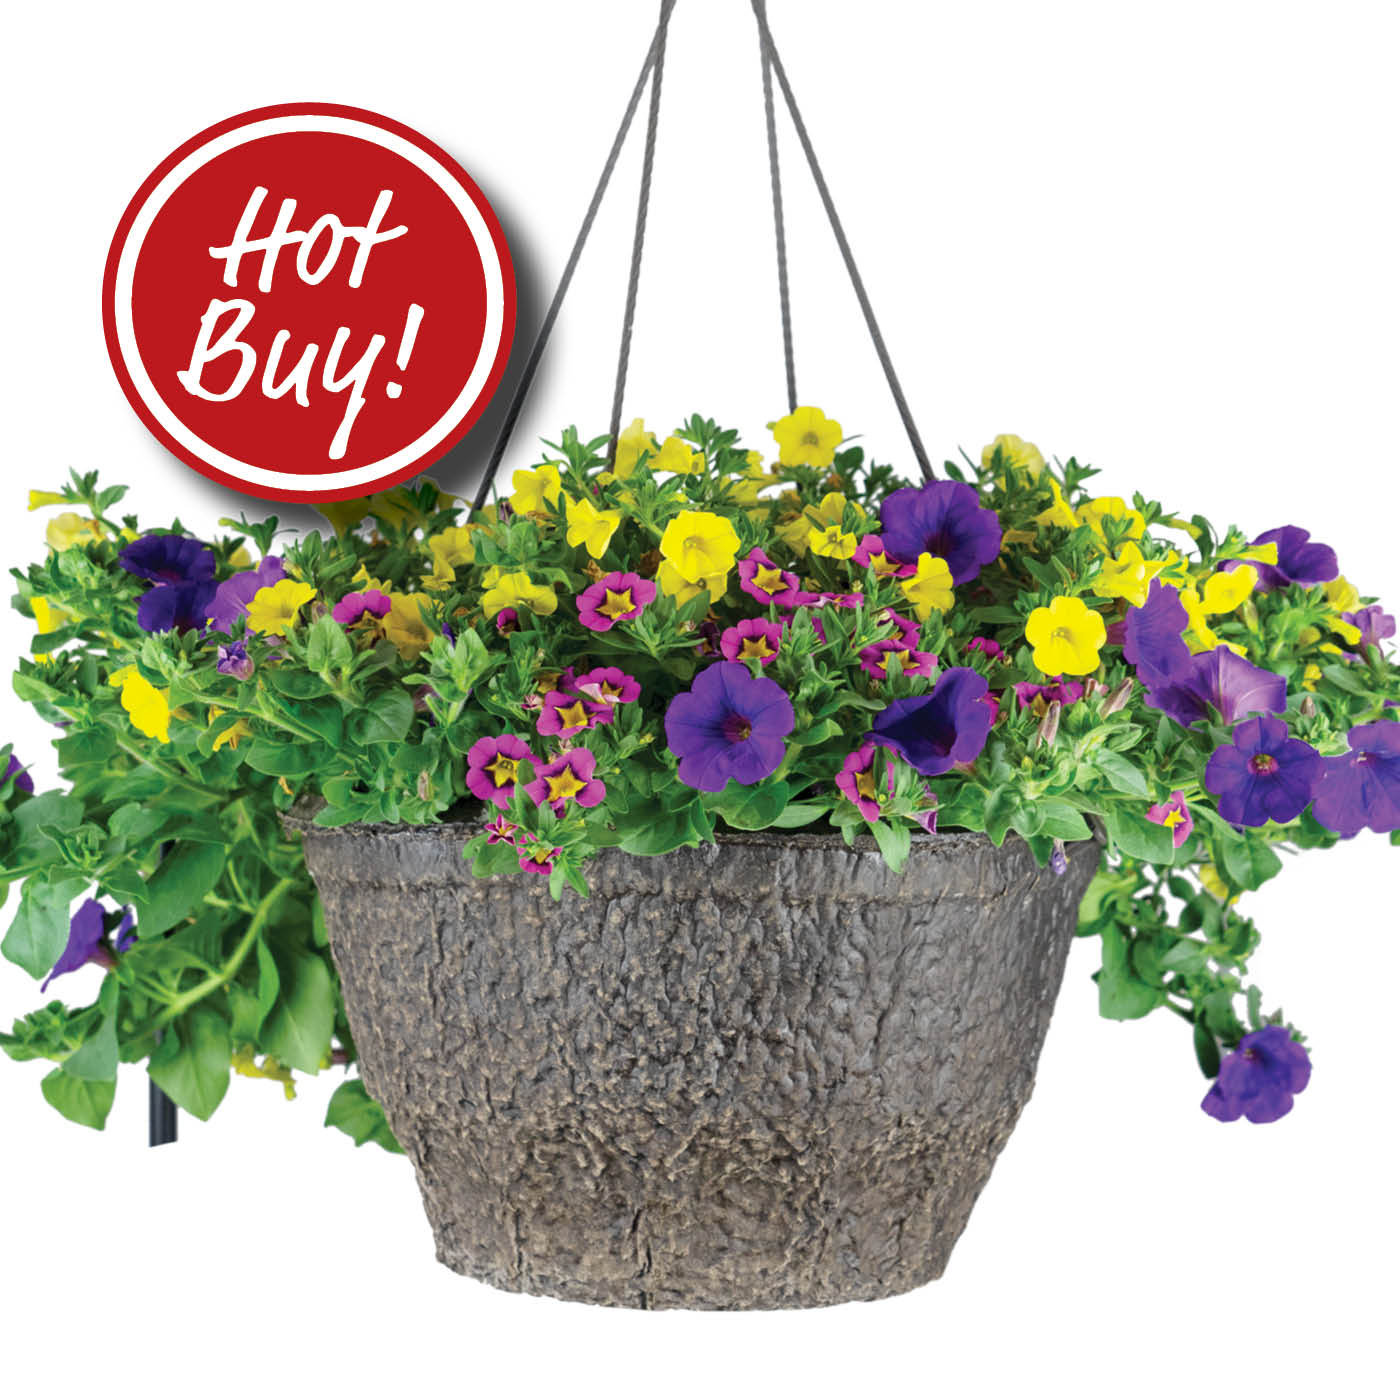 Blooming Baskets on Hot Buy!